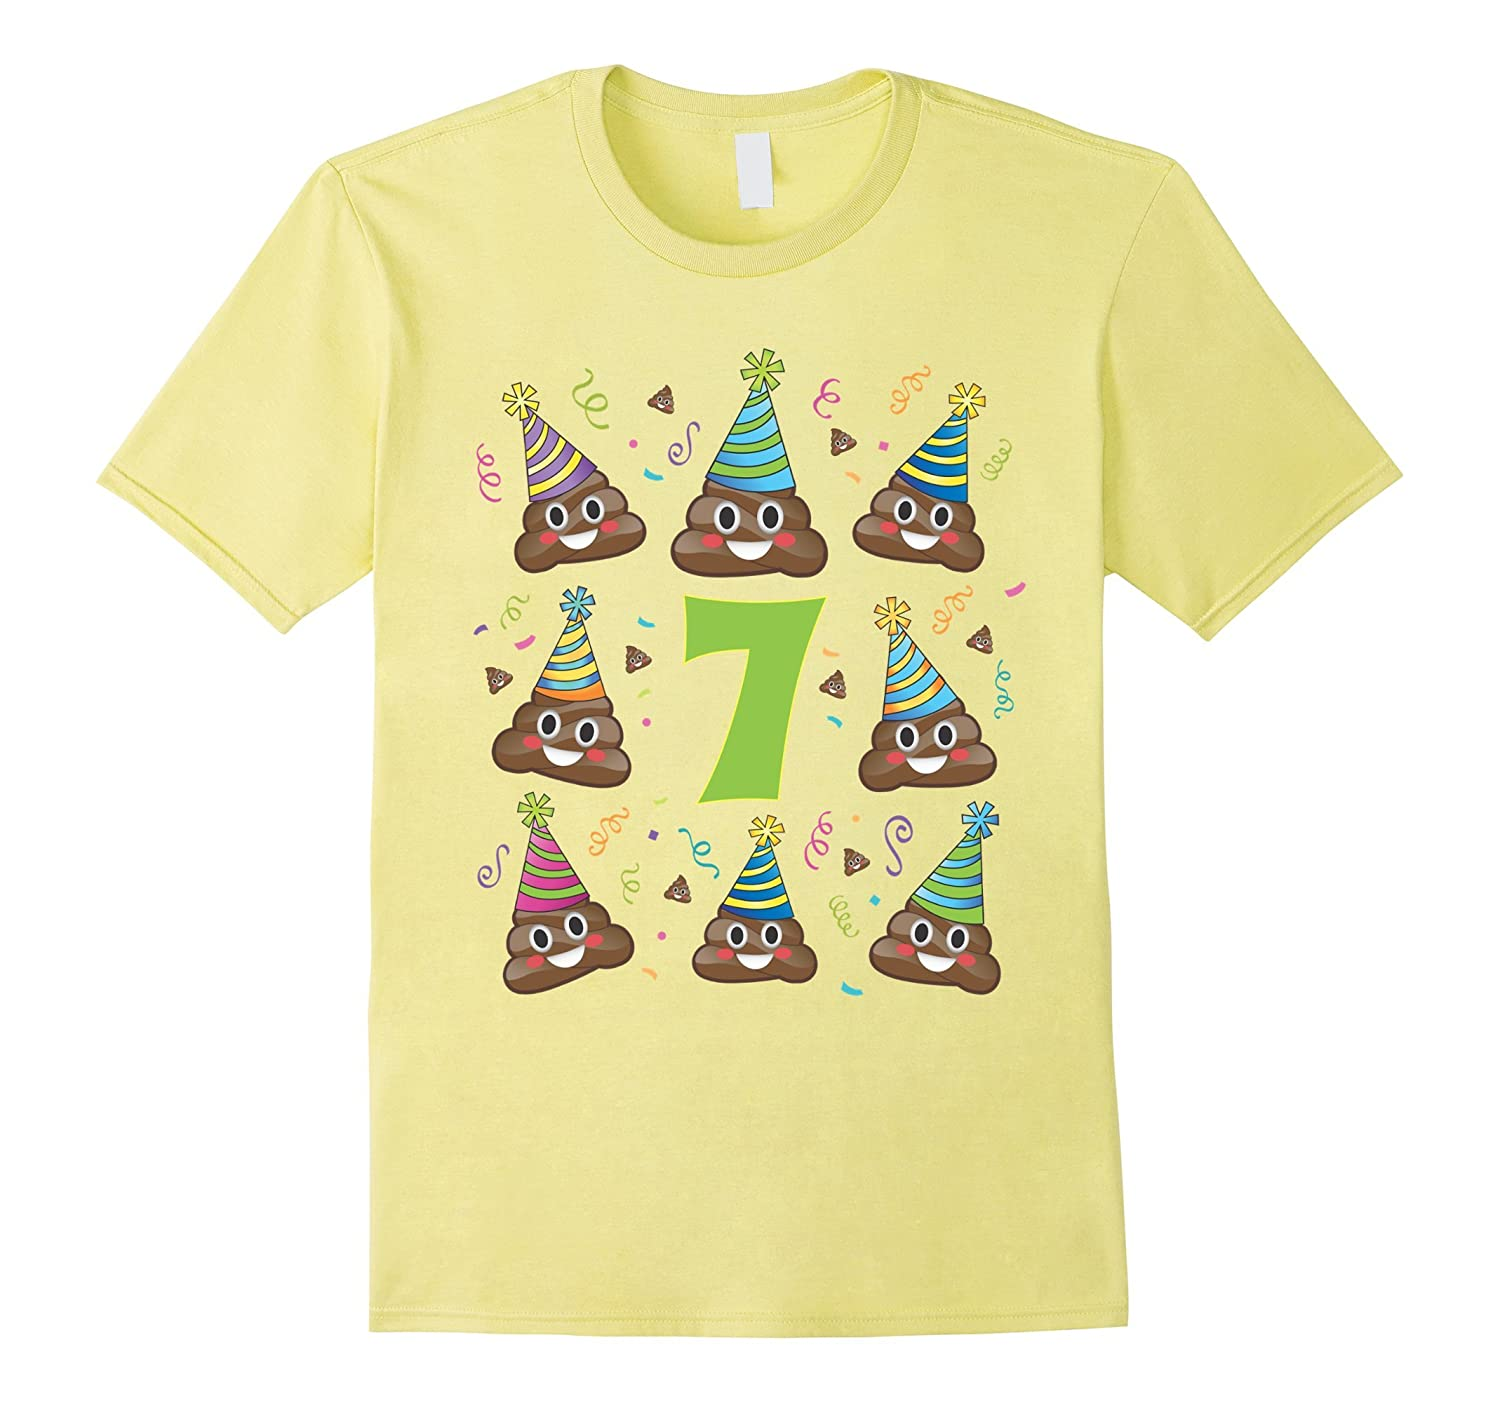 Poop Birthday Shirt Emoji 7 Seven Year Old Girl Boy